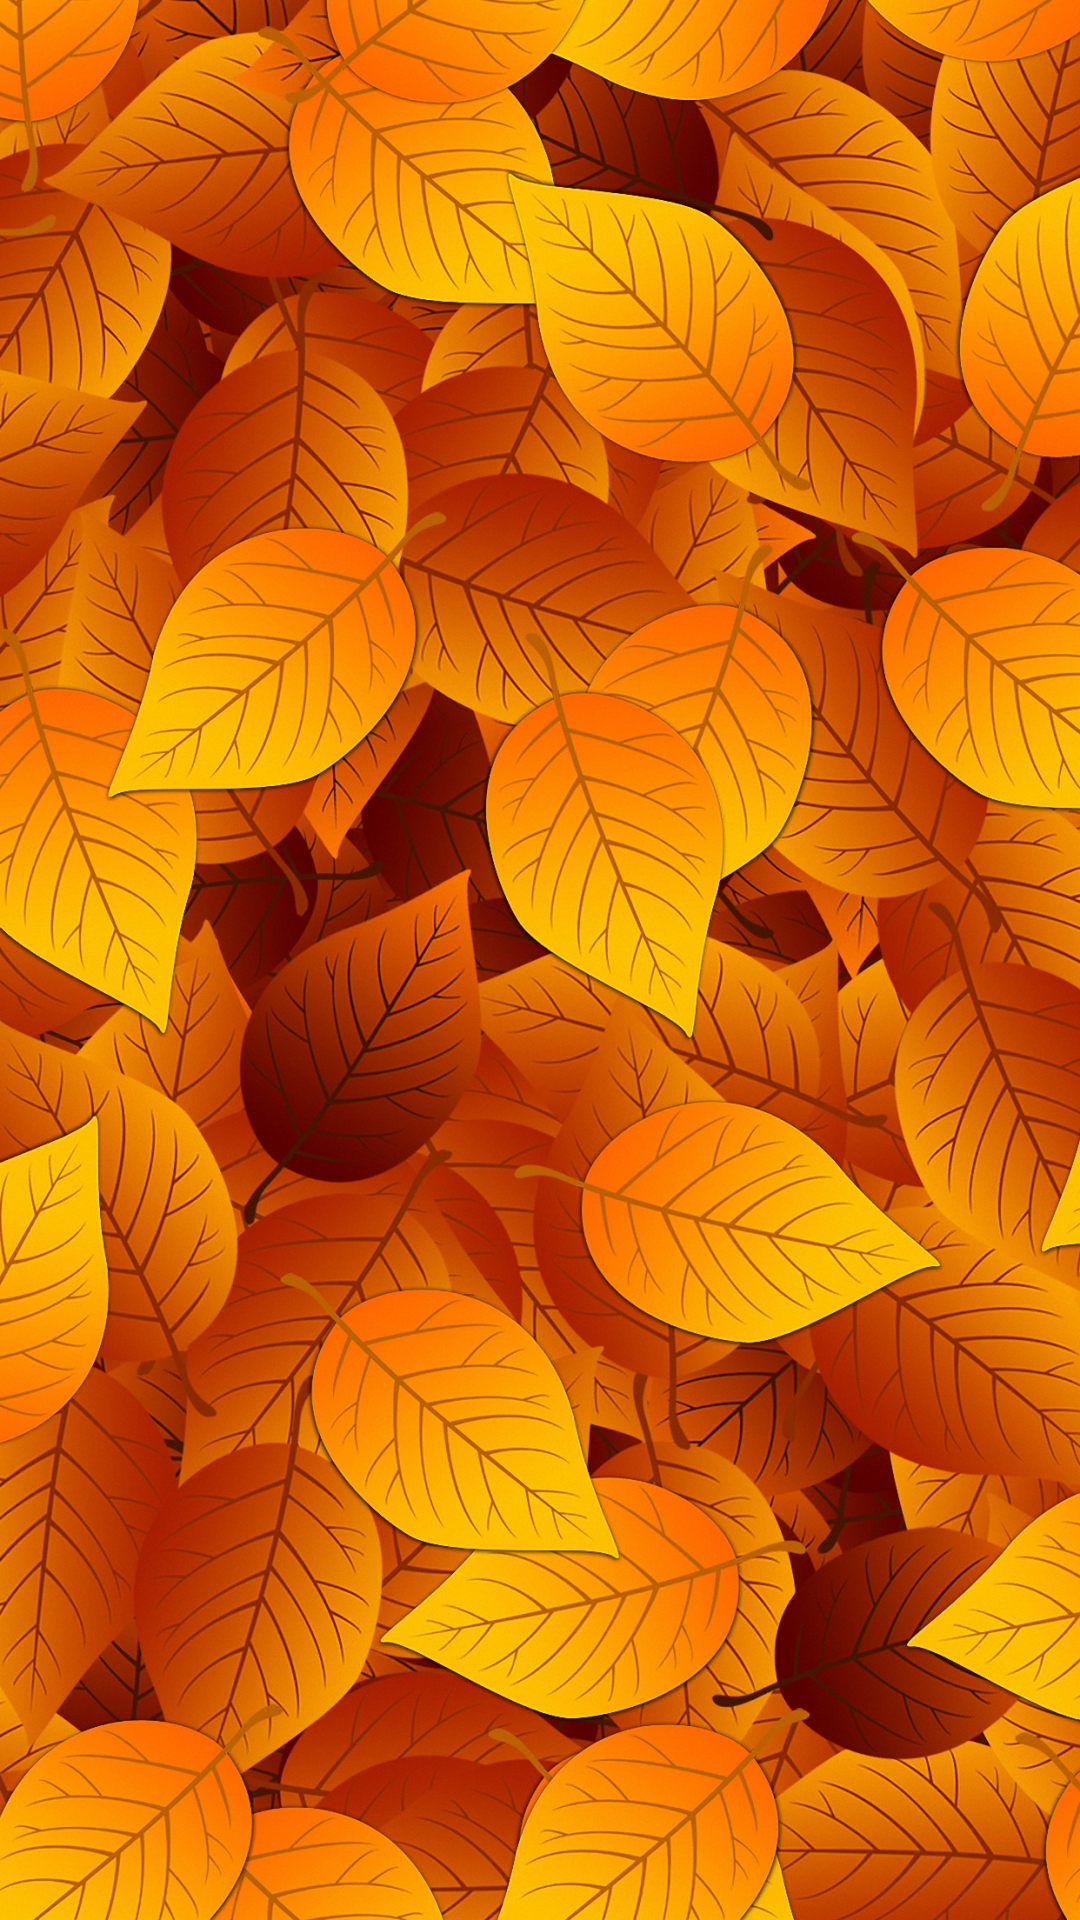 Fall Leaves Desktop Wallpaper Backgrounds Oto 241 O Fondos De Pantalla Para Android E Iphone Fondos